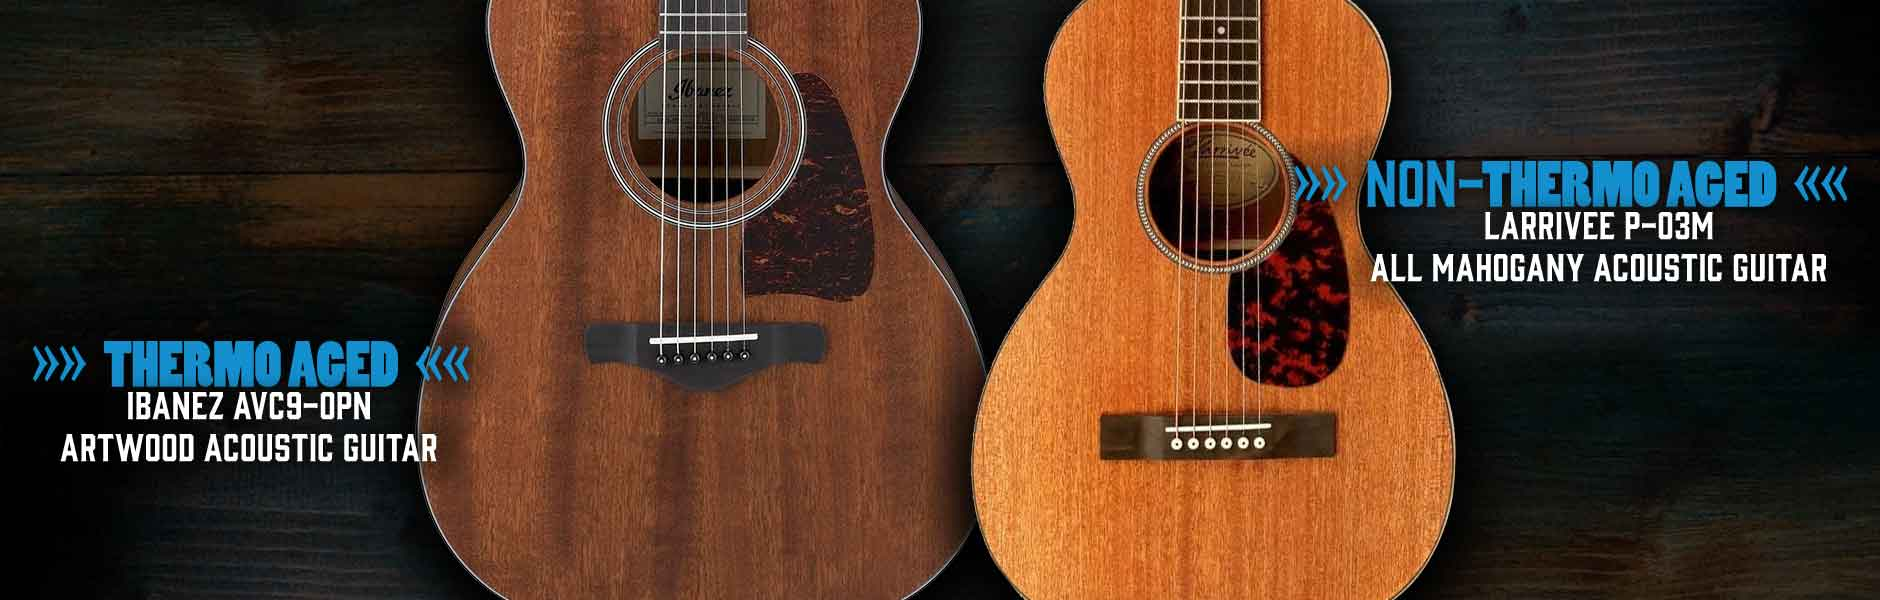 thermo aged v regular acoustic